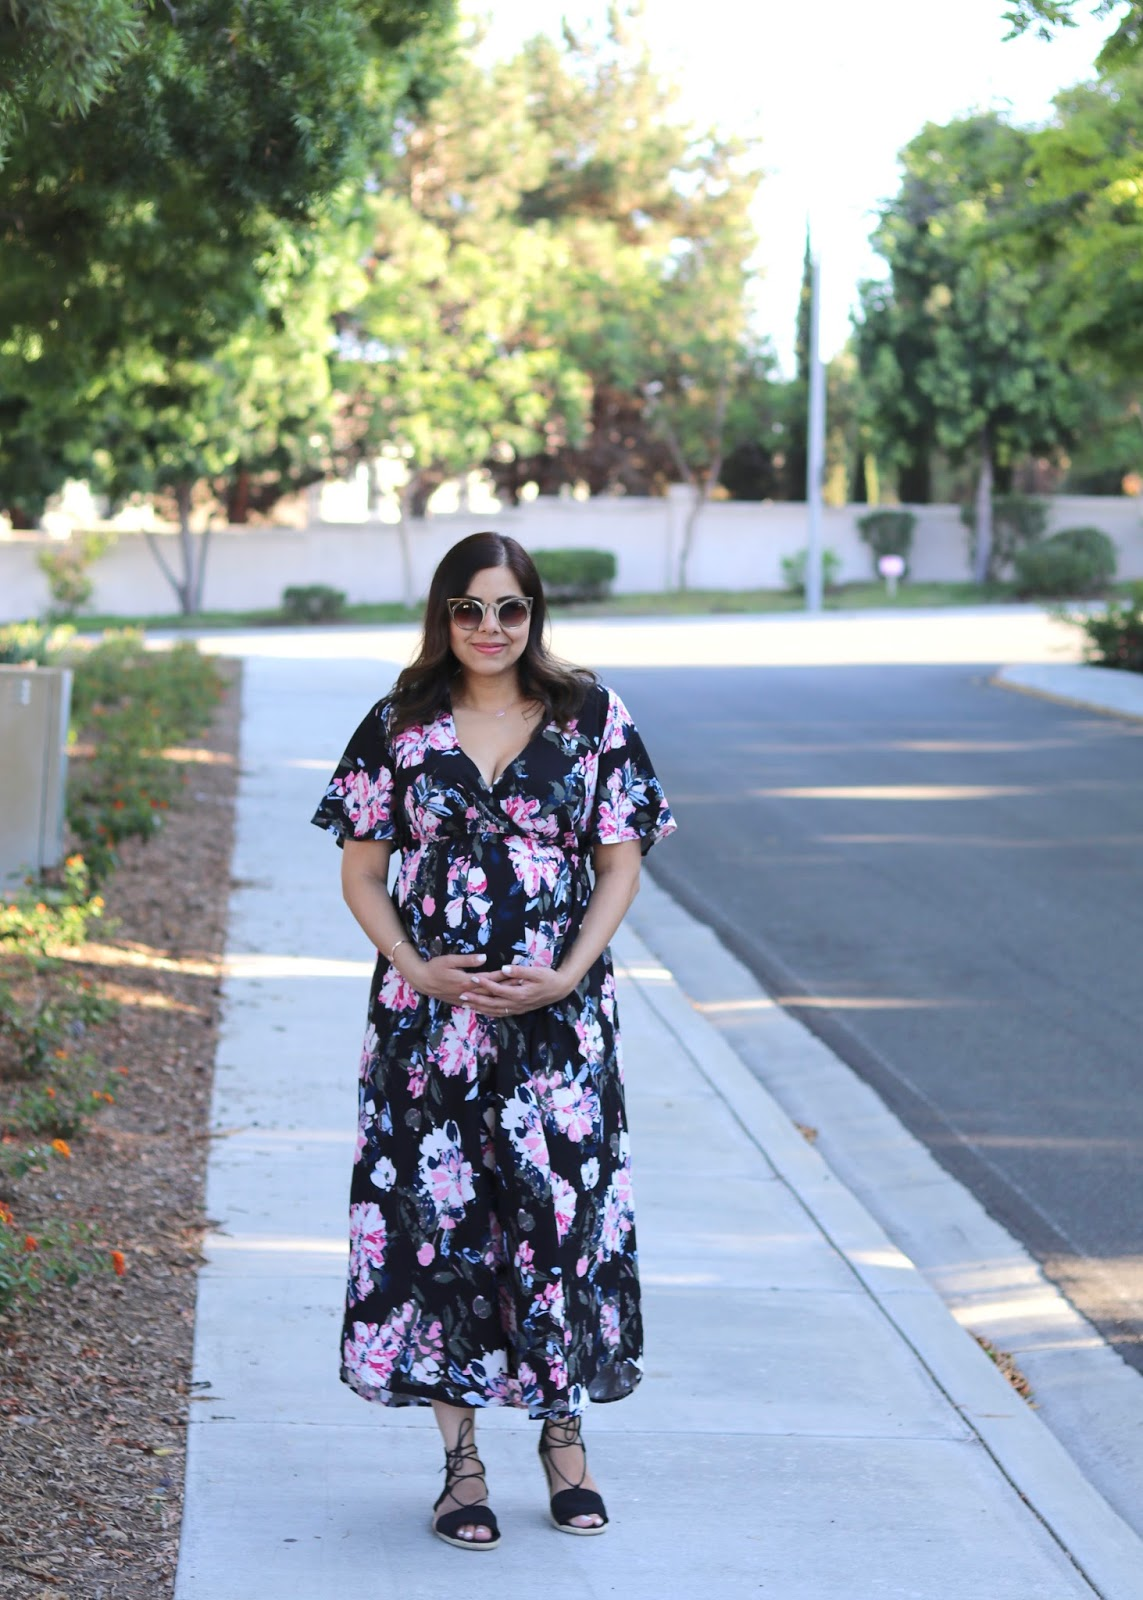 affordable summer fashion, dressing up the bump, summer pregnancy style, quay invader sunglasses